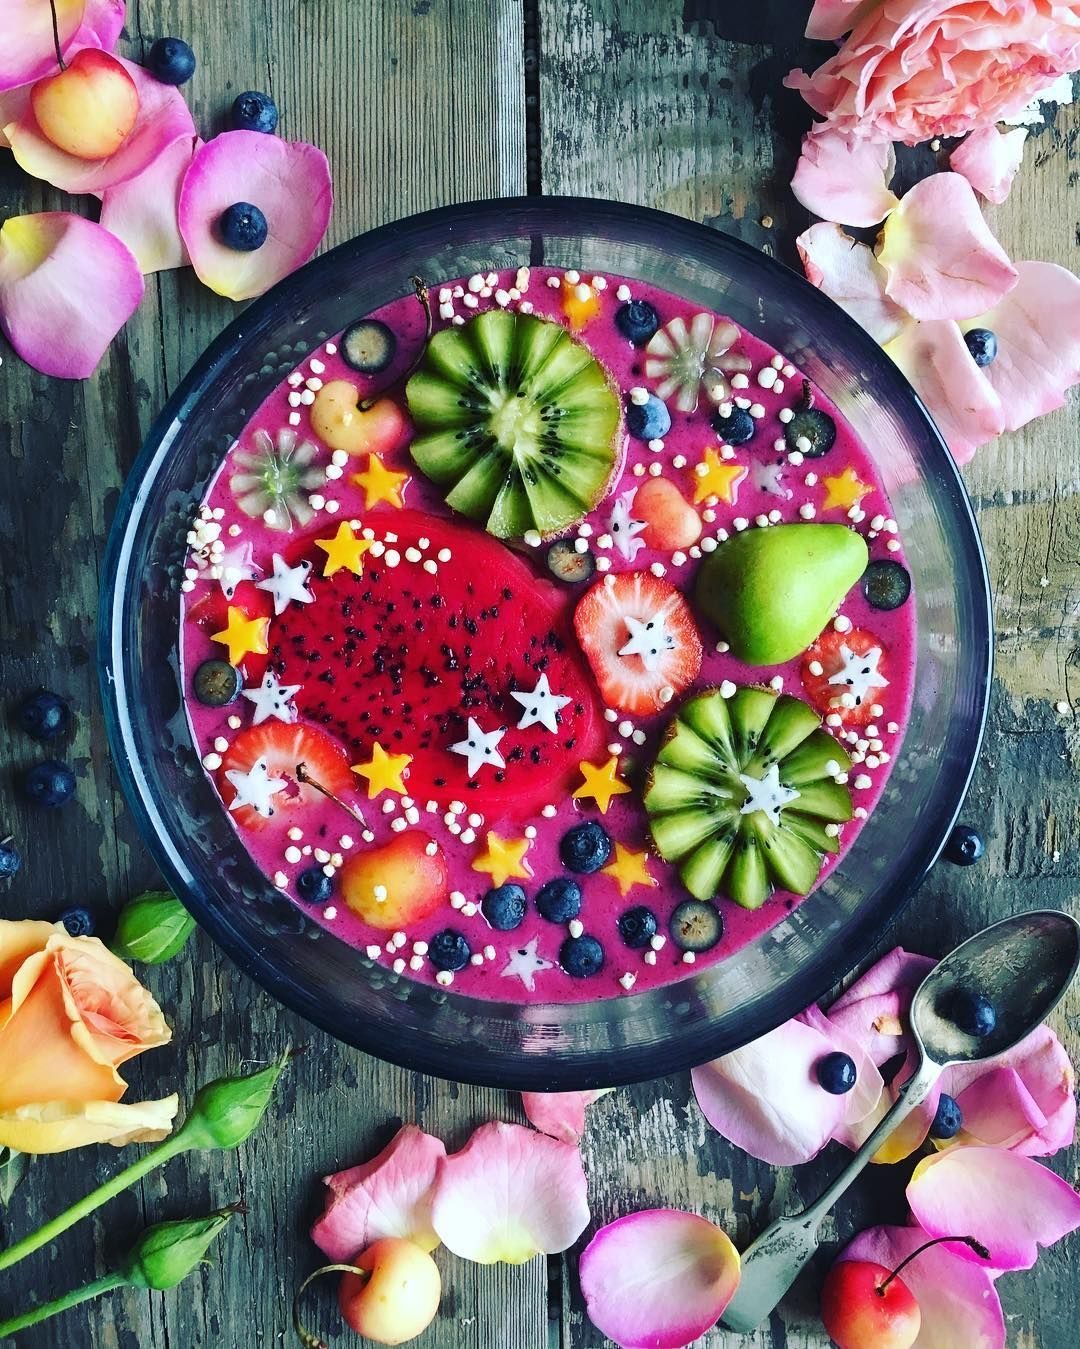 Beautiful Fruit Bowls 5 050 Likes 60 Comments Ami Vegan Sydney The